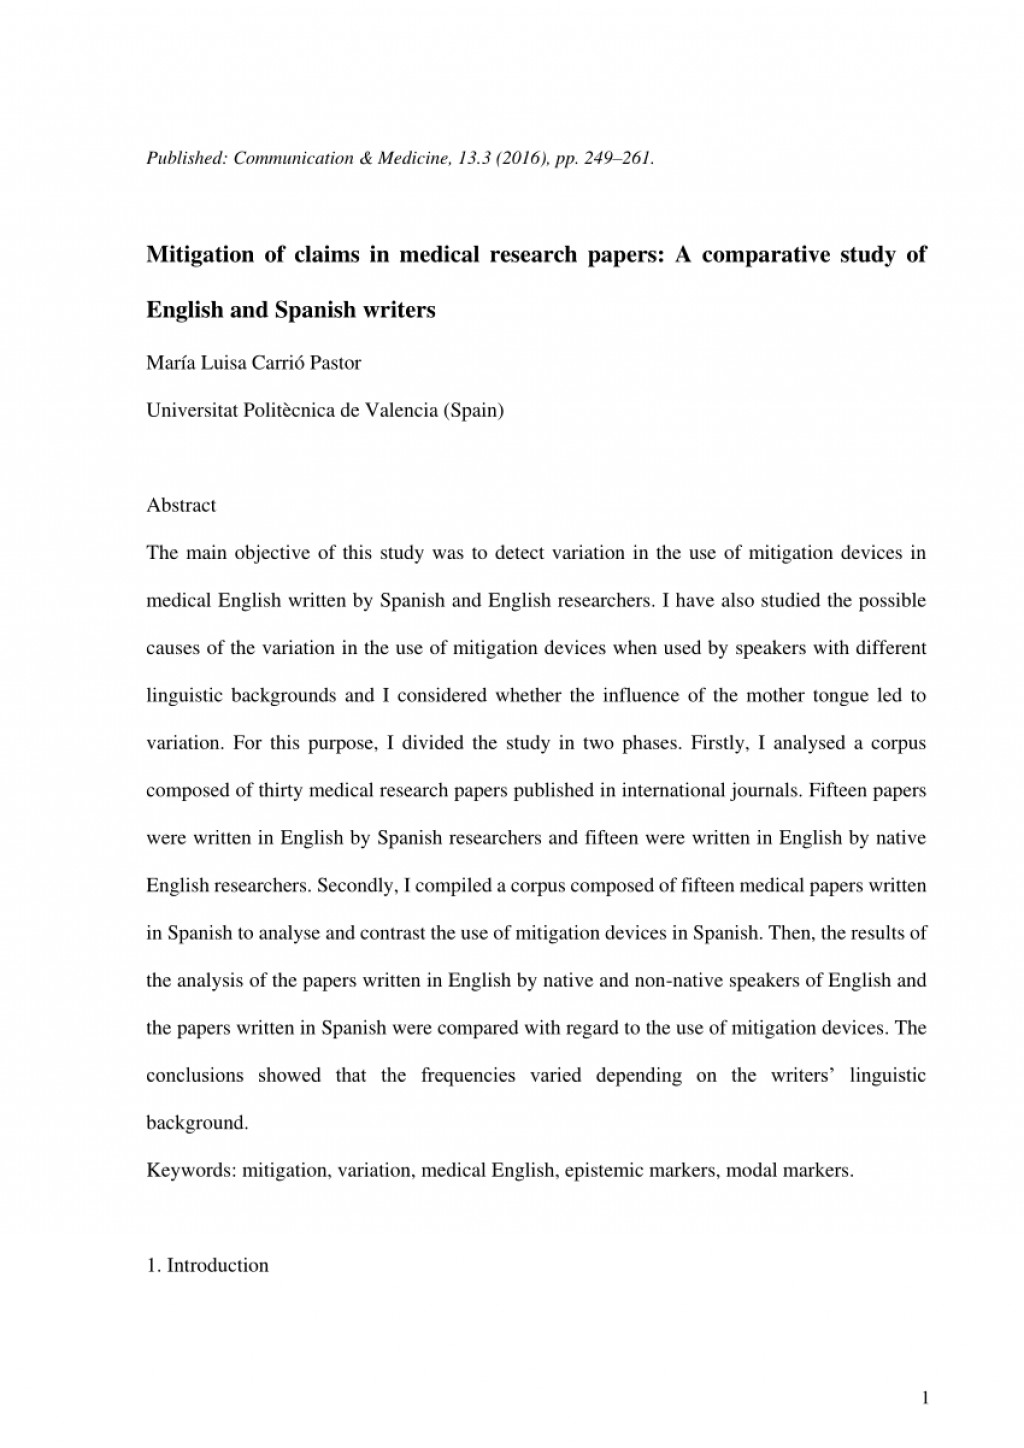 003 English Research Papers Paper Wondrous Teaching As A Foreign Language Literature Pdf Large